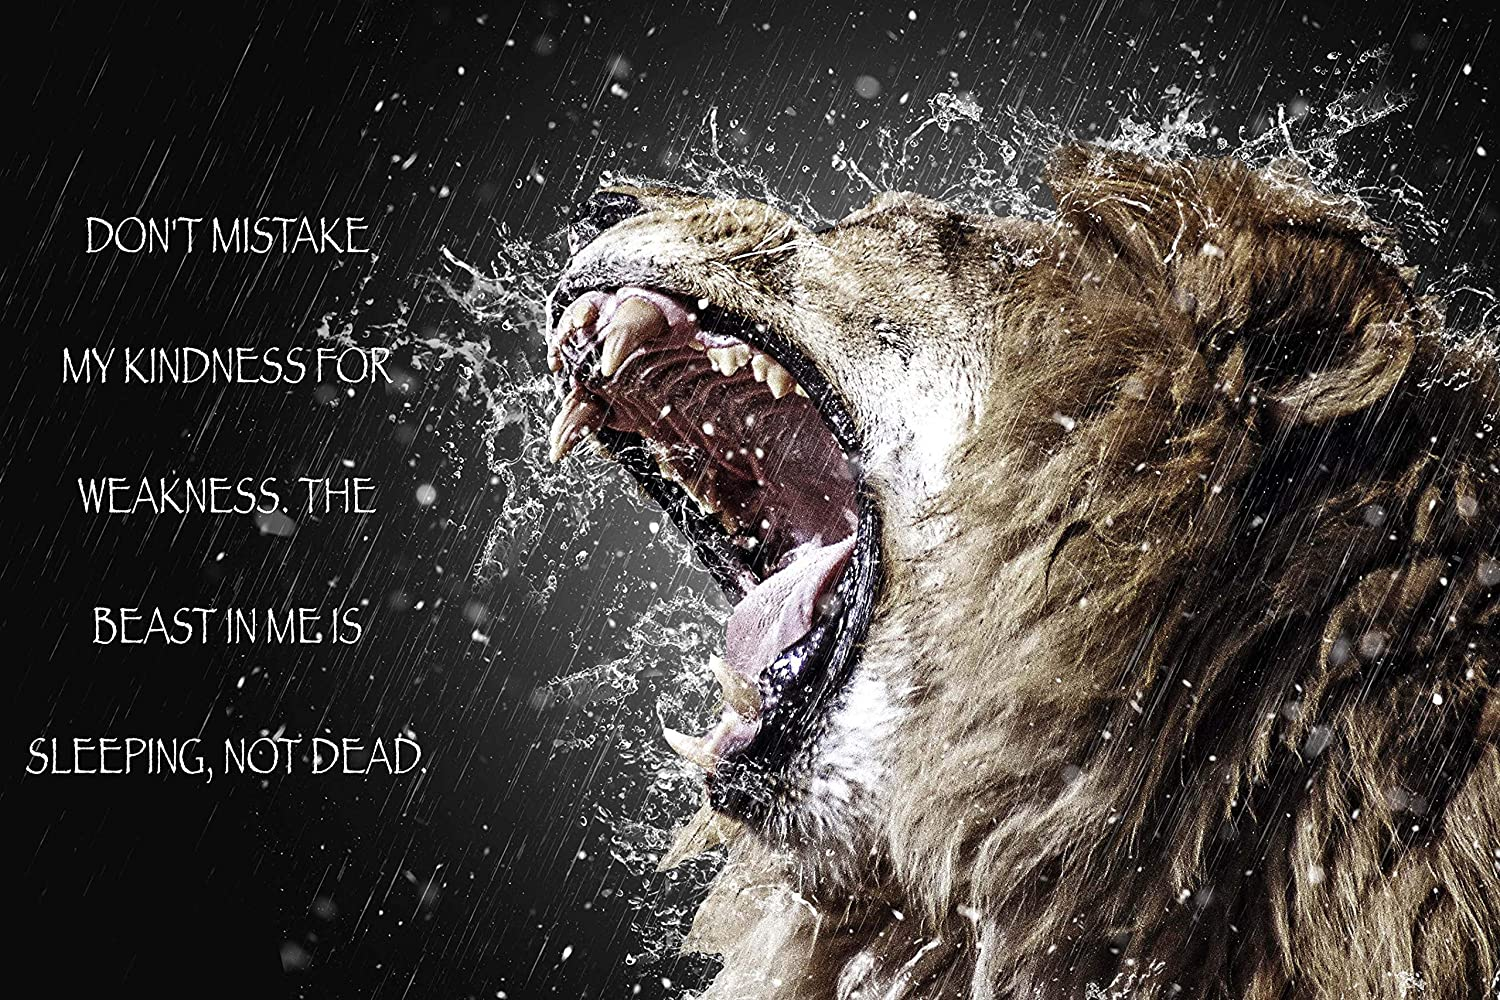 Ezposterprints Most Popular Lion Theme Quote Posters Power Strength Brave Beast Motivational Quotes Poster Printing Wall Art Print For Home